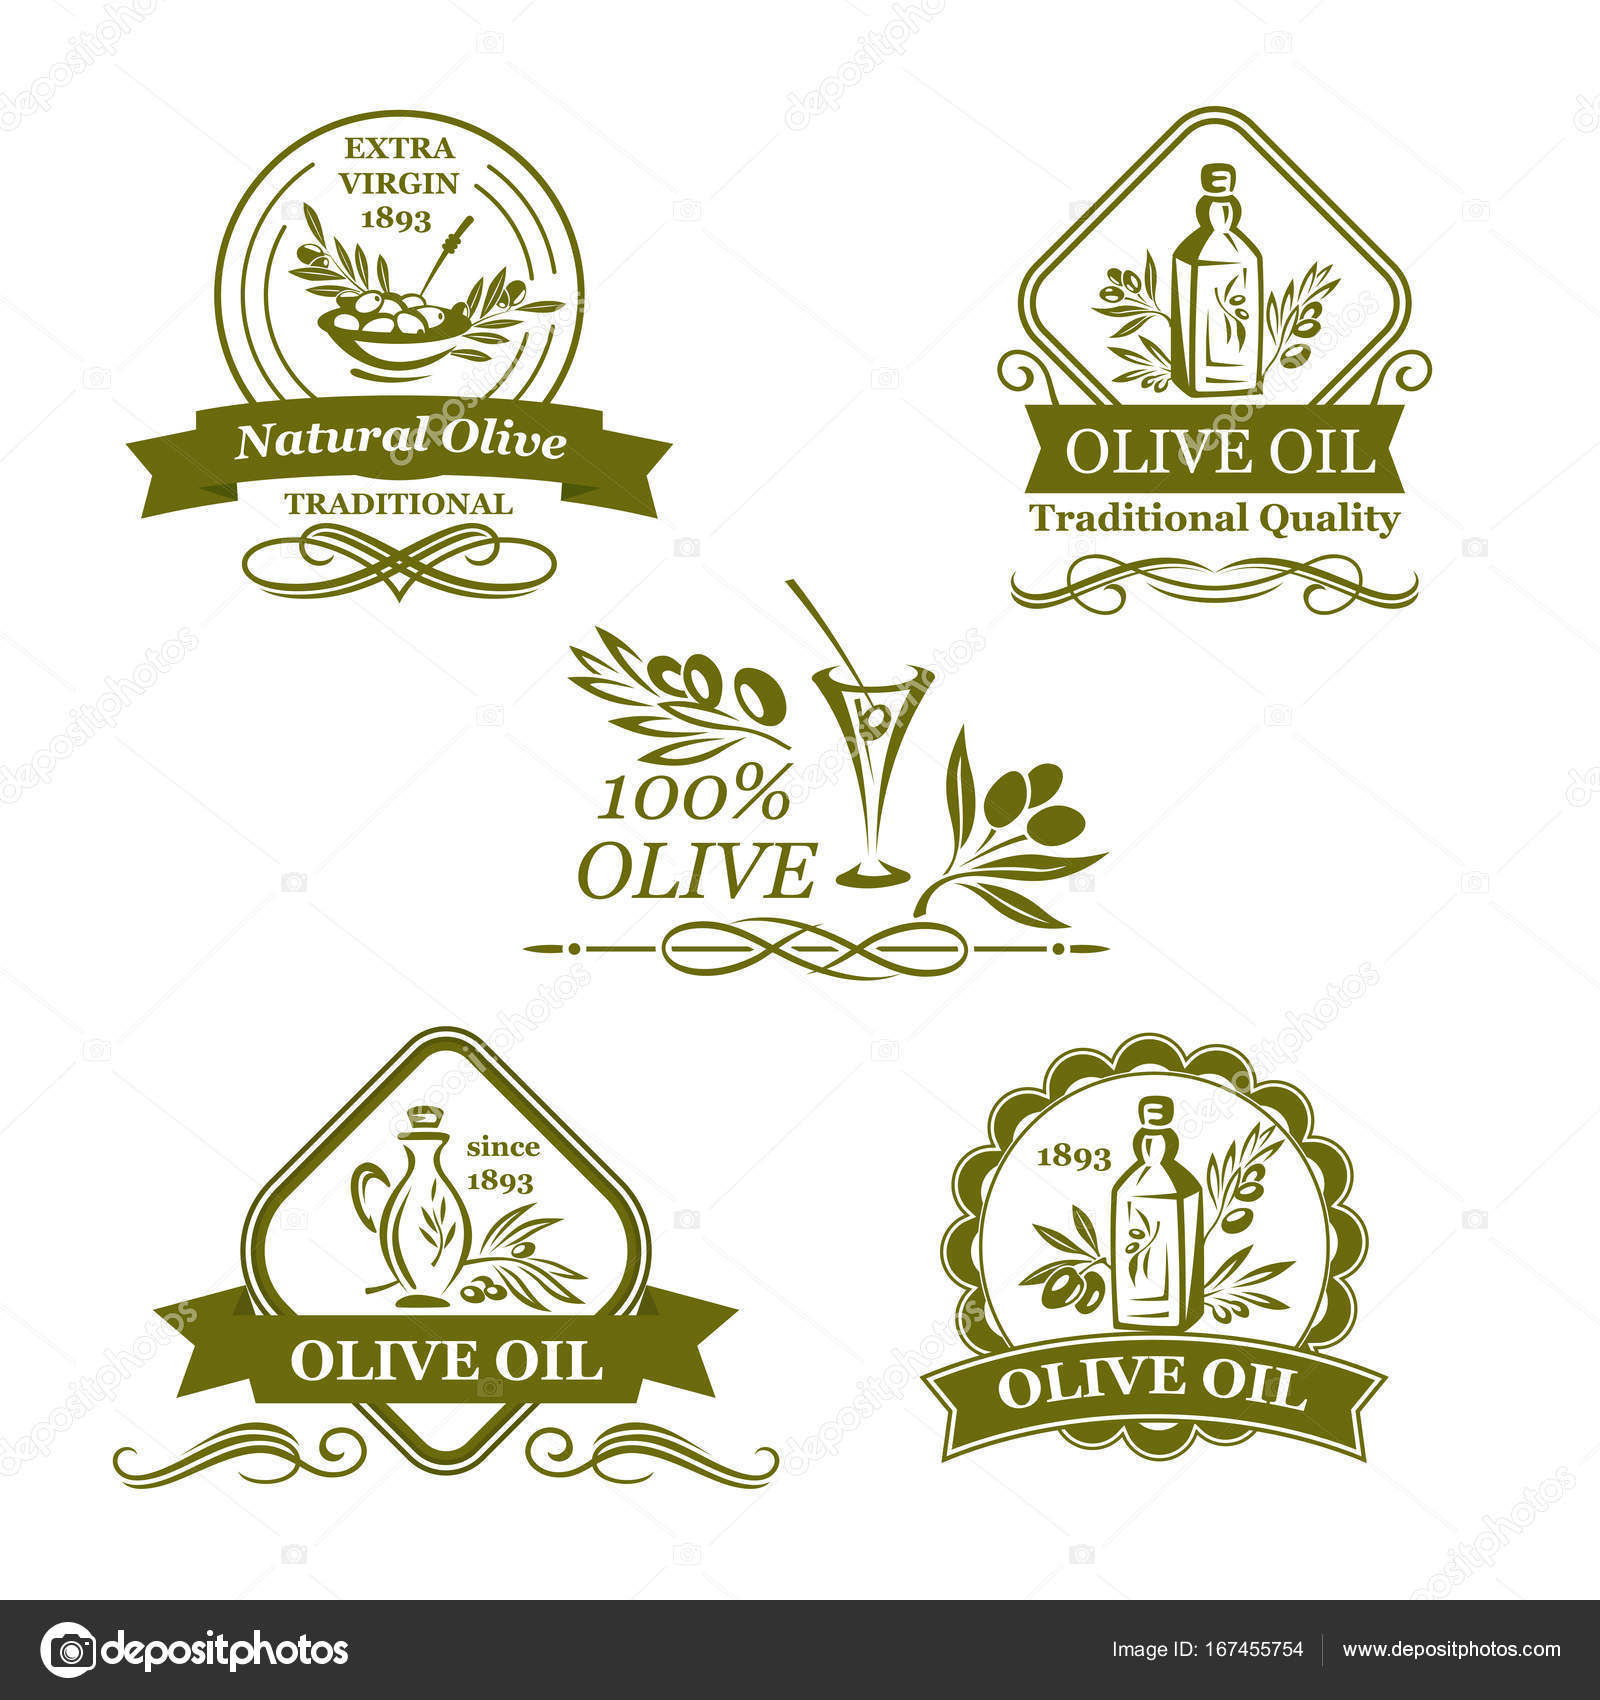 Olive oil bottle and olives vector icons stock vector olive oil bottle and olives vector icons stock vector buycottarizona